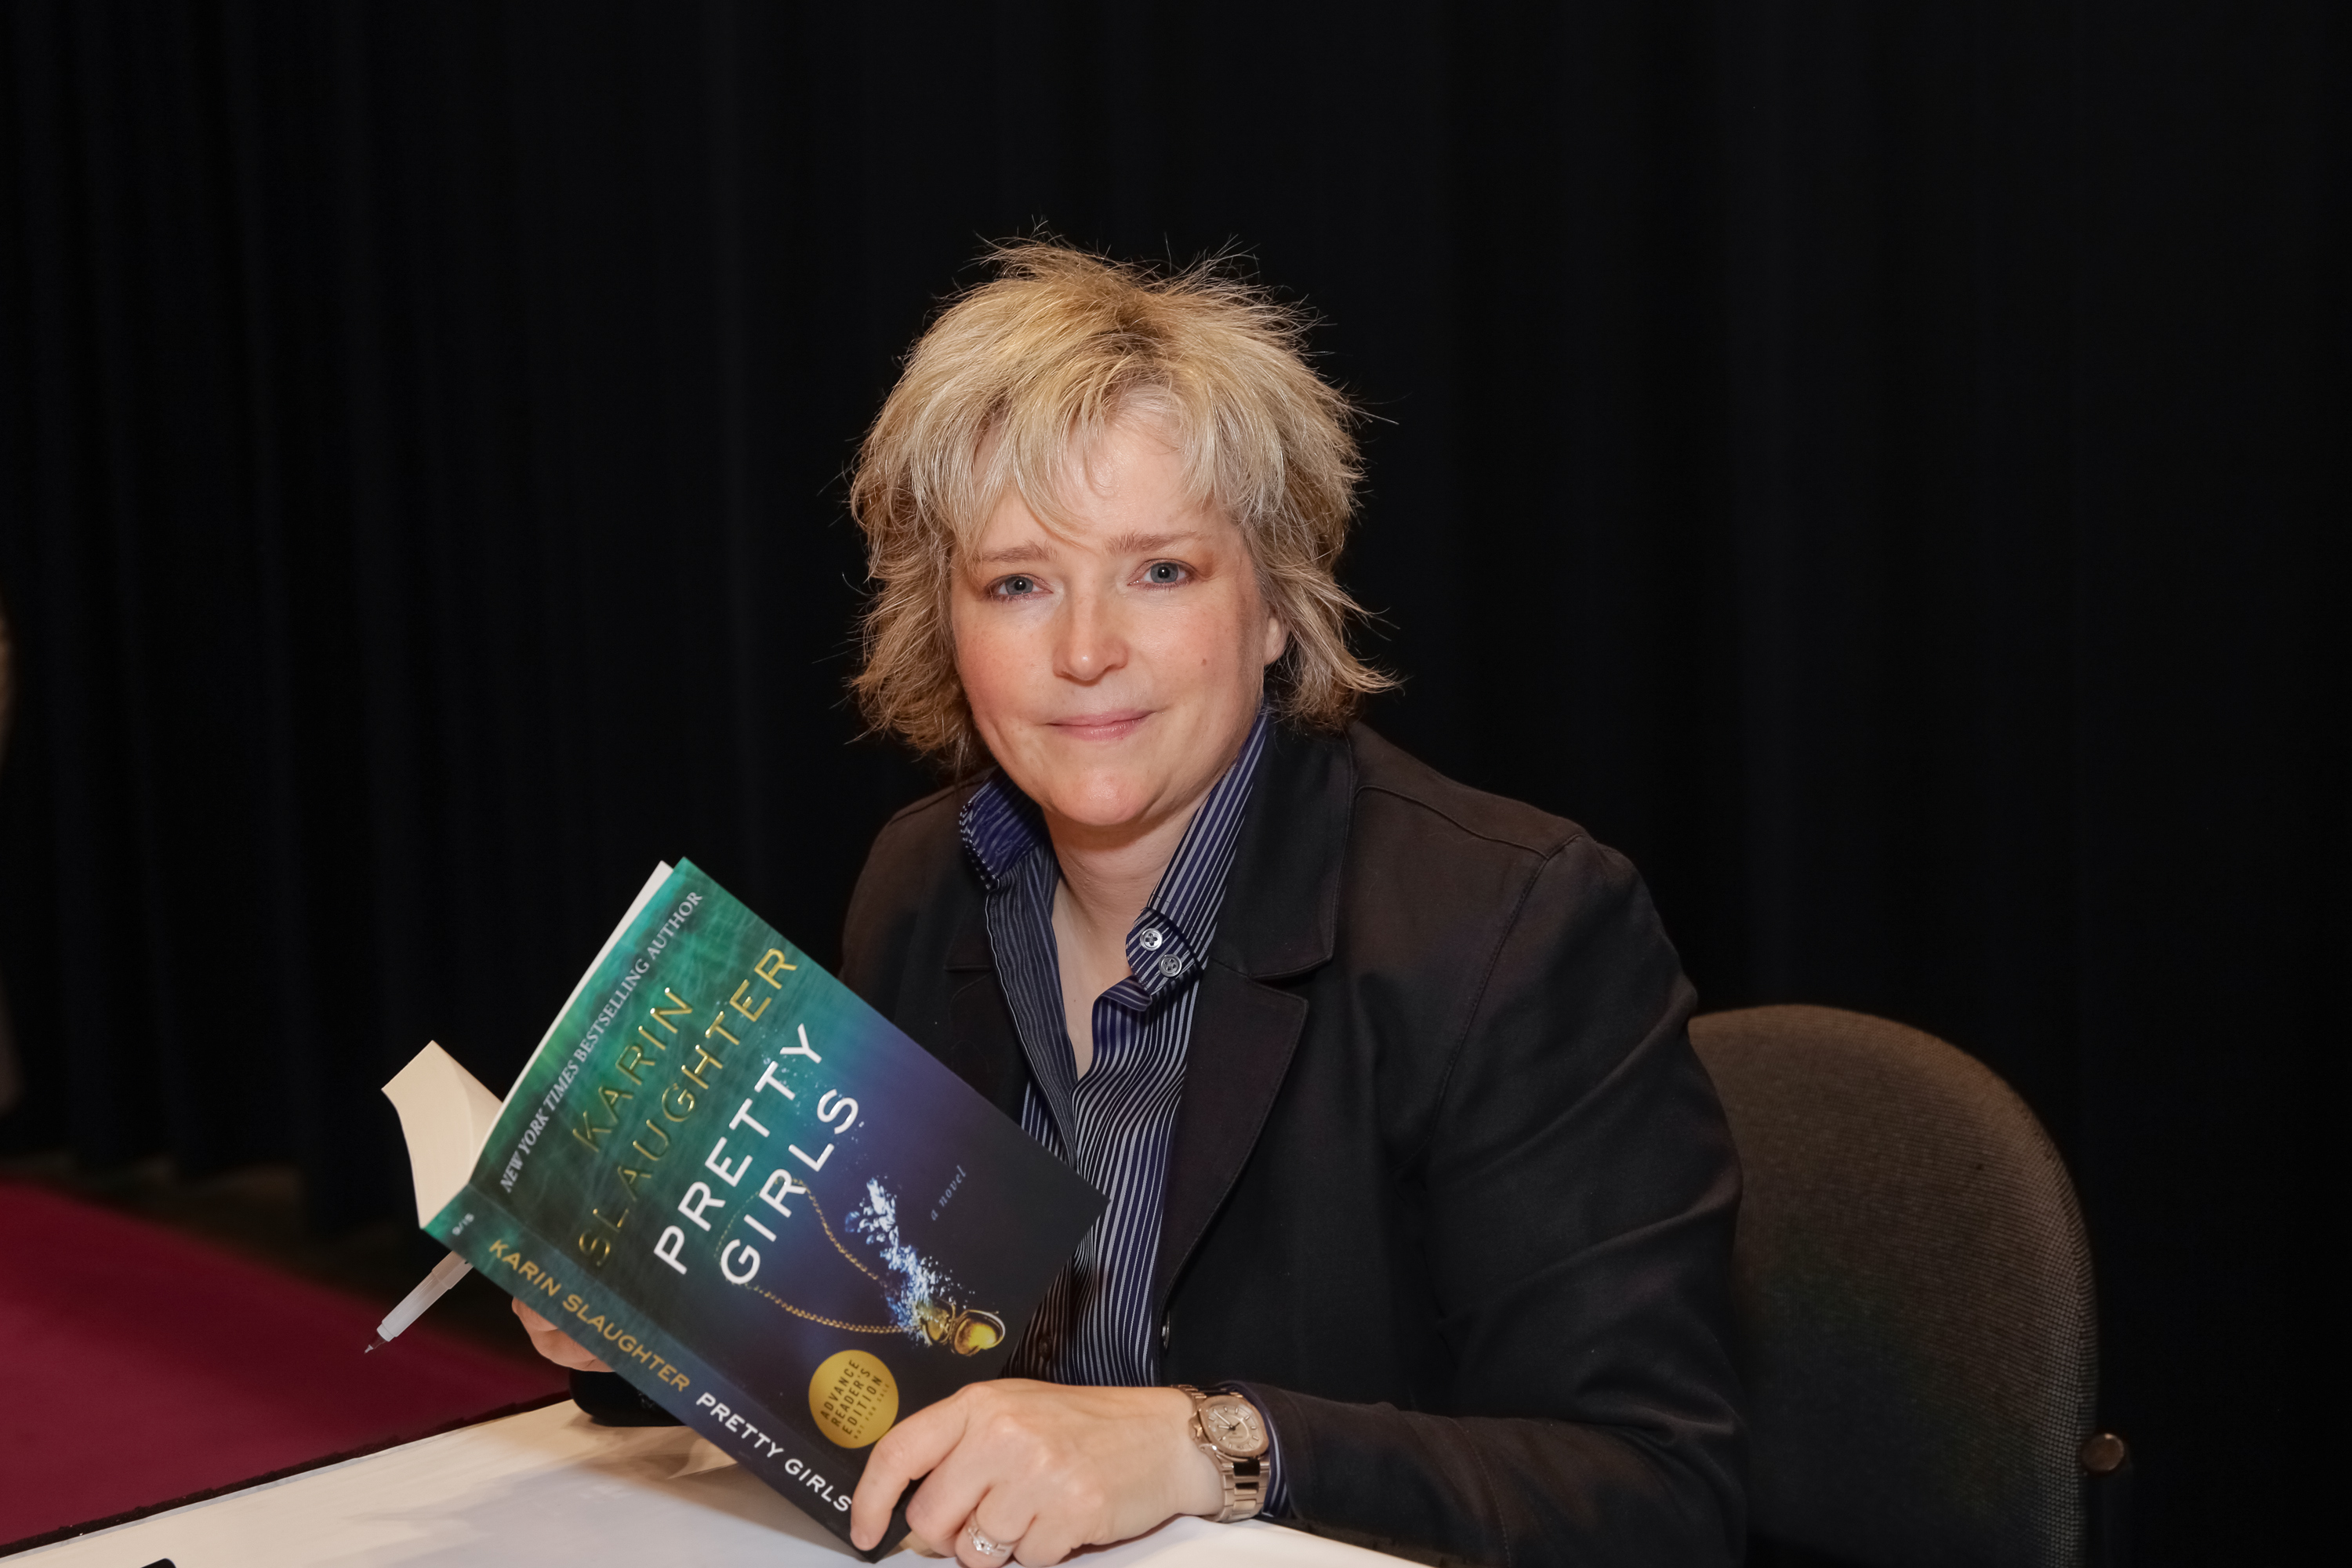 Author Karin Slaughter poses for photographs with her newest book during BookExpo America  in New York City on May 27, 2015.